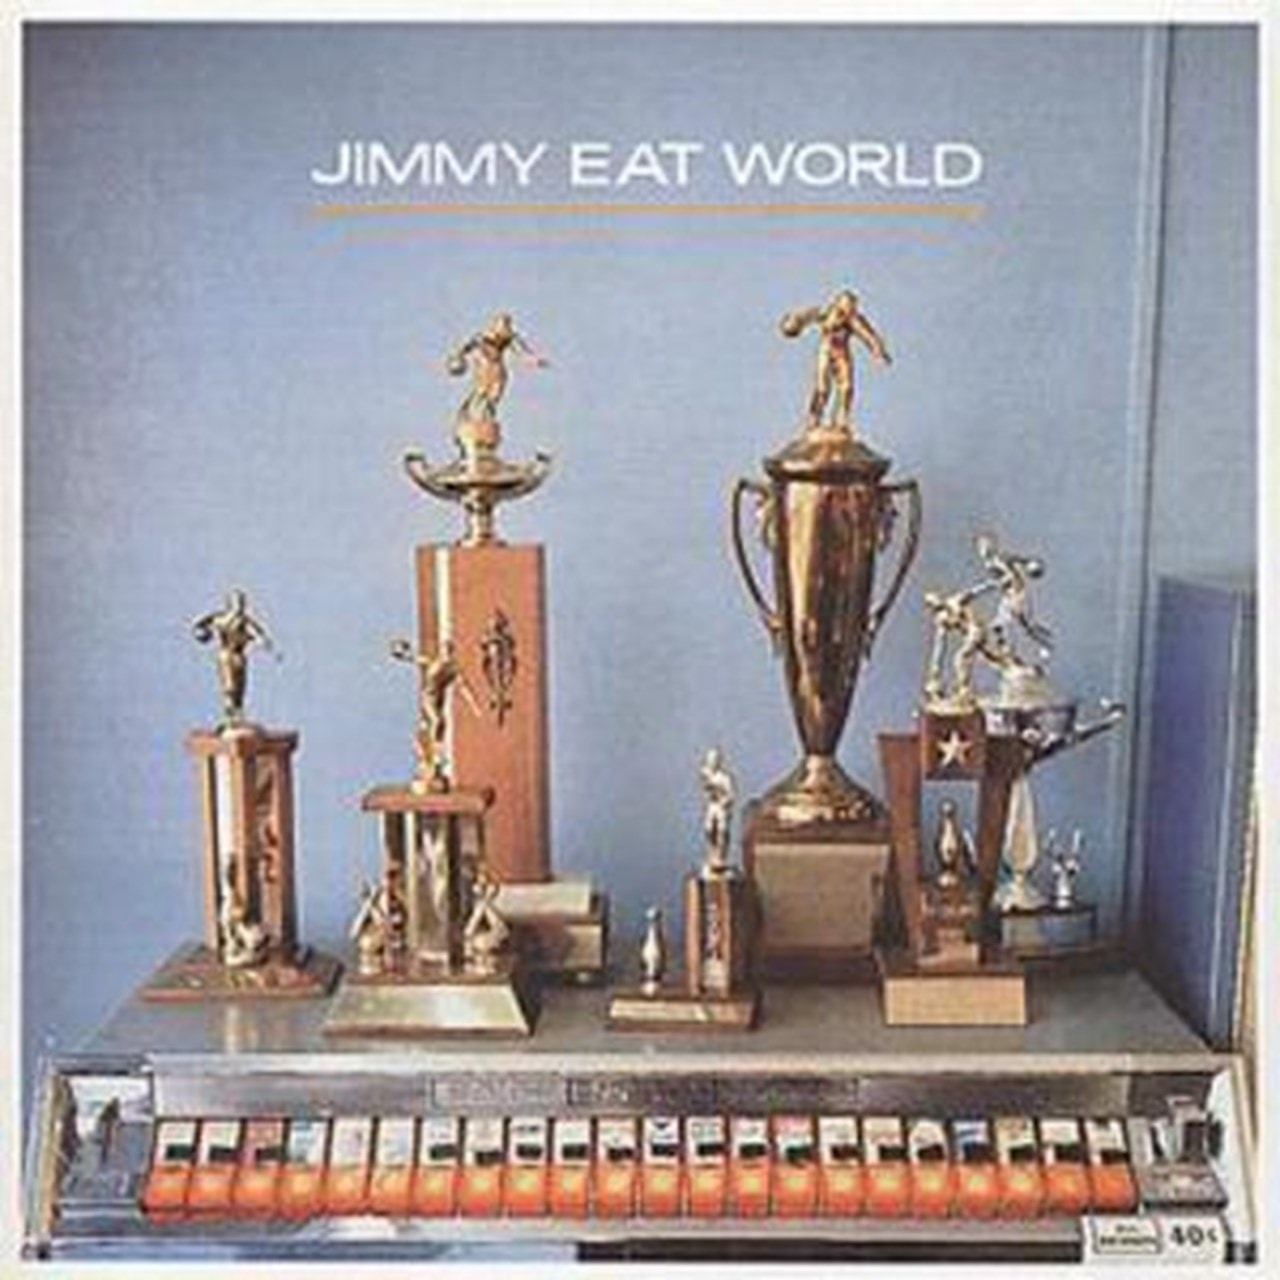 Jimmy Eat World - 1